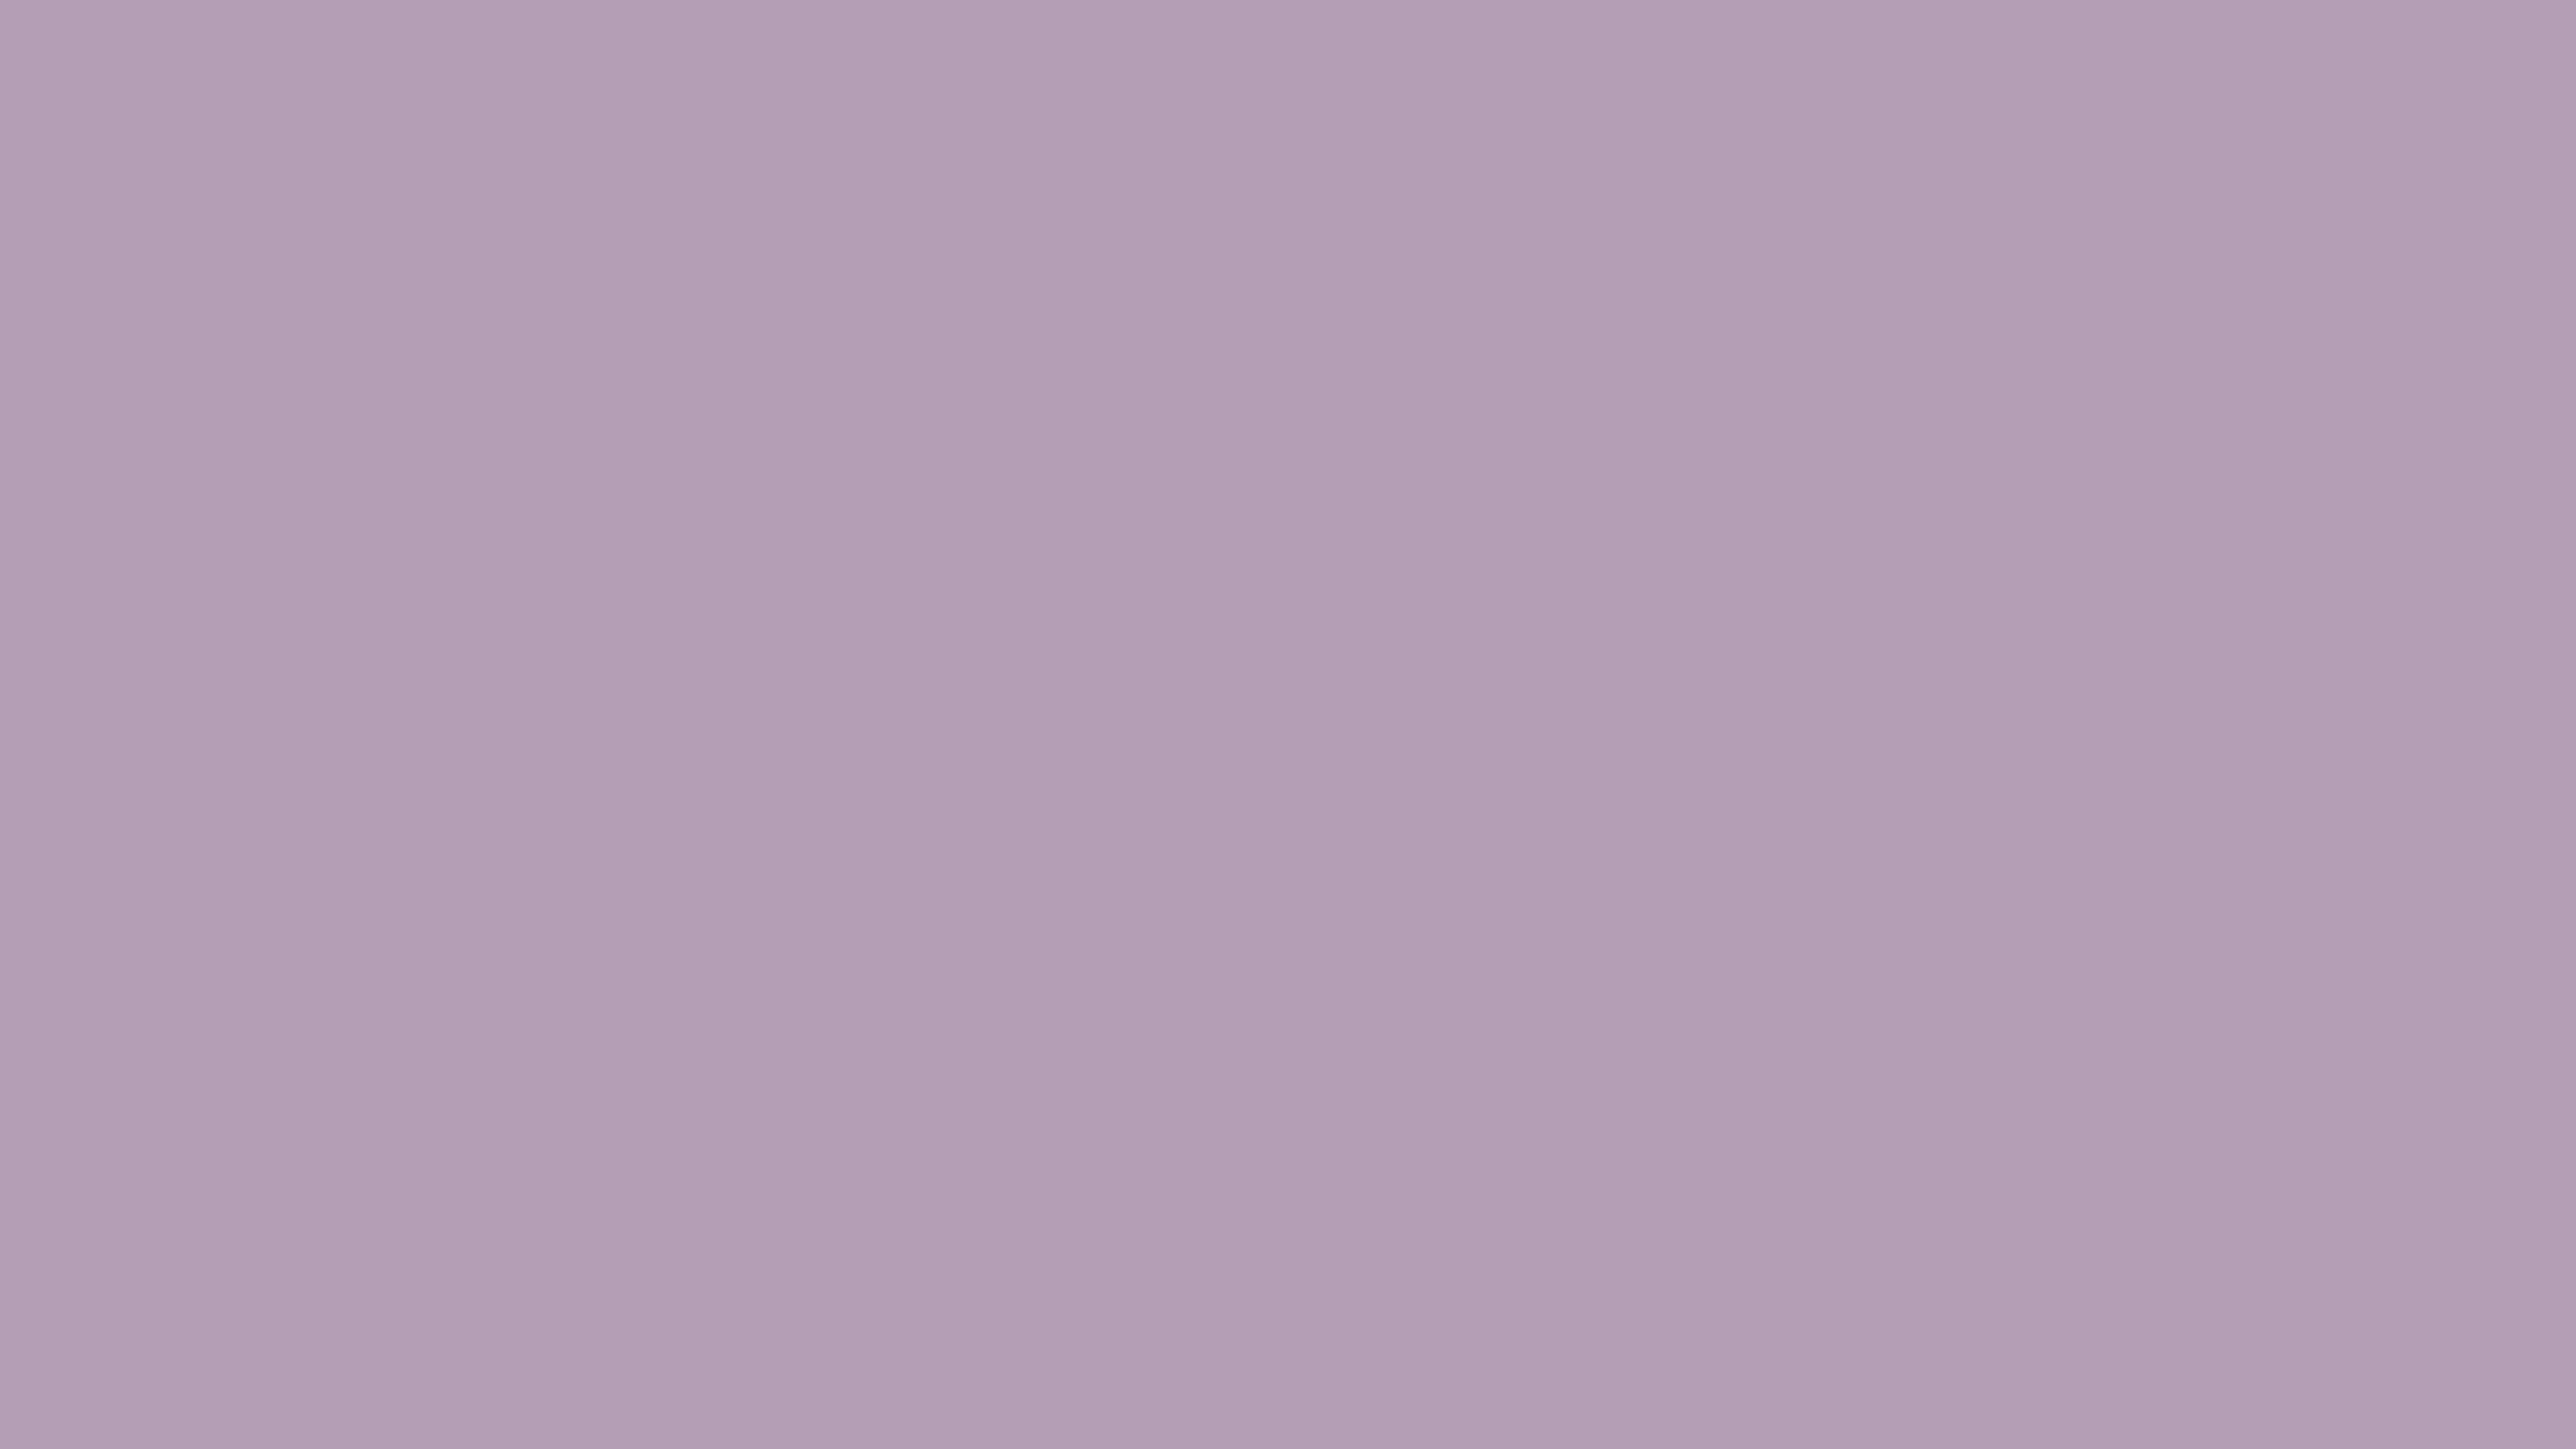 4096x2304 Pastel Purple Solid Color Background